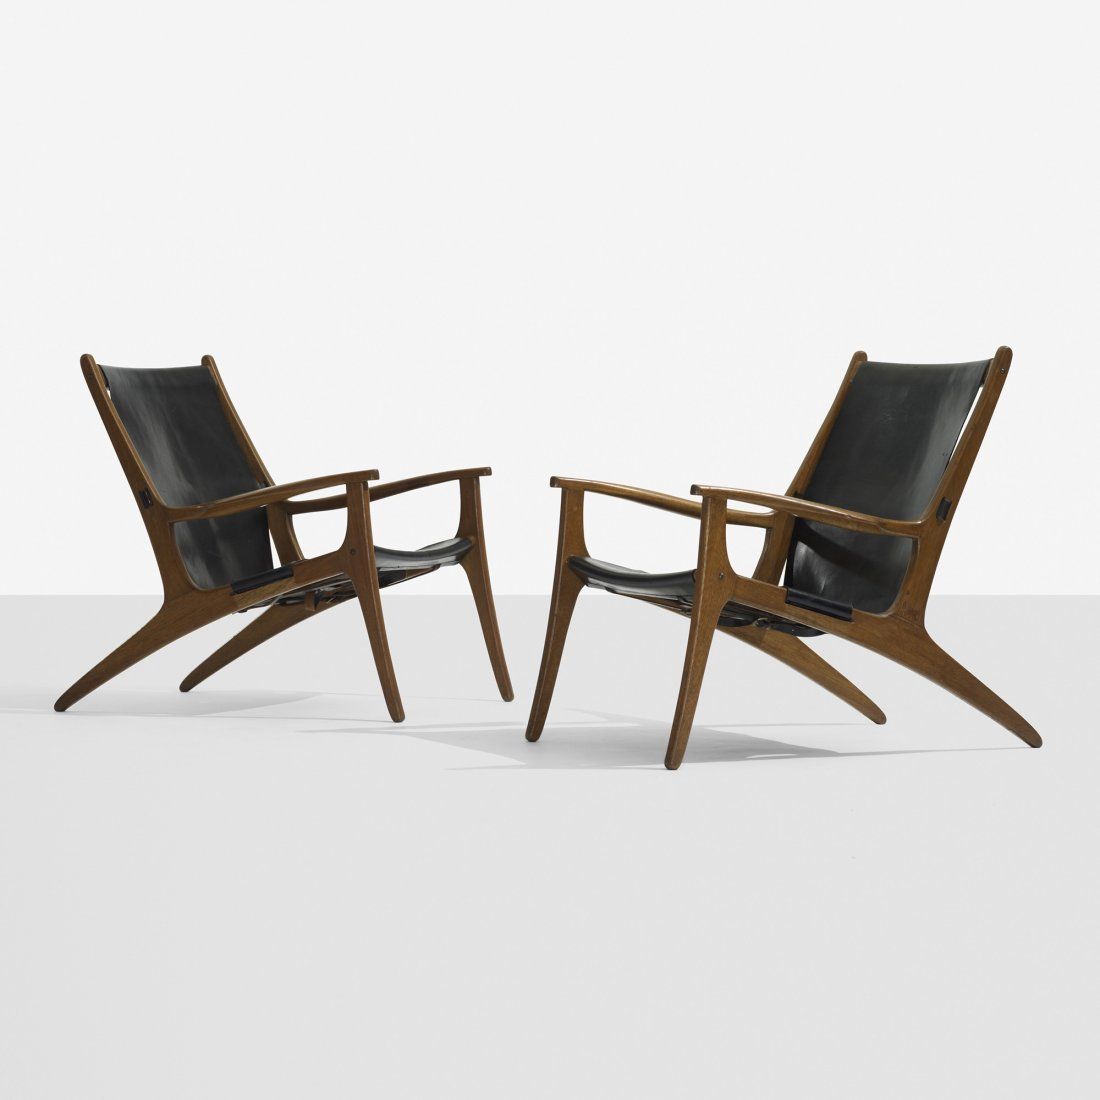 102: Uno and Östen Kristiansson lounge chairs, pair